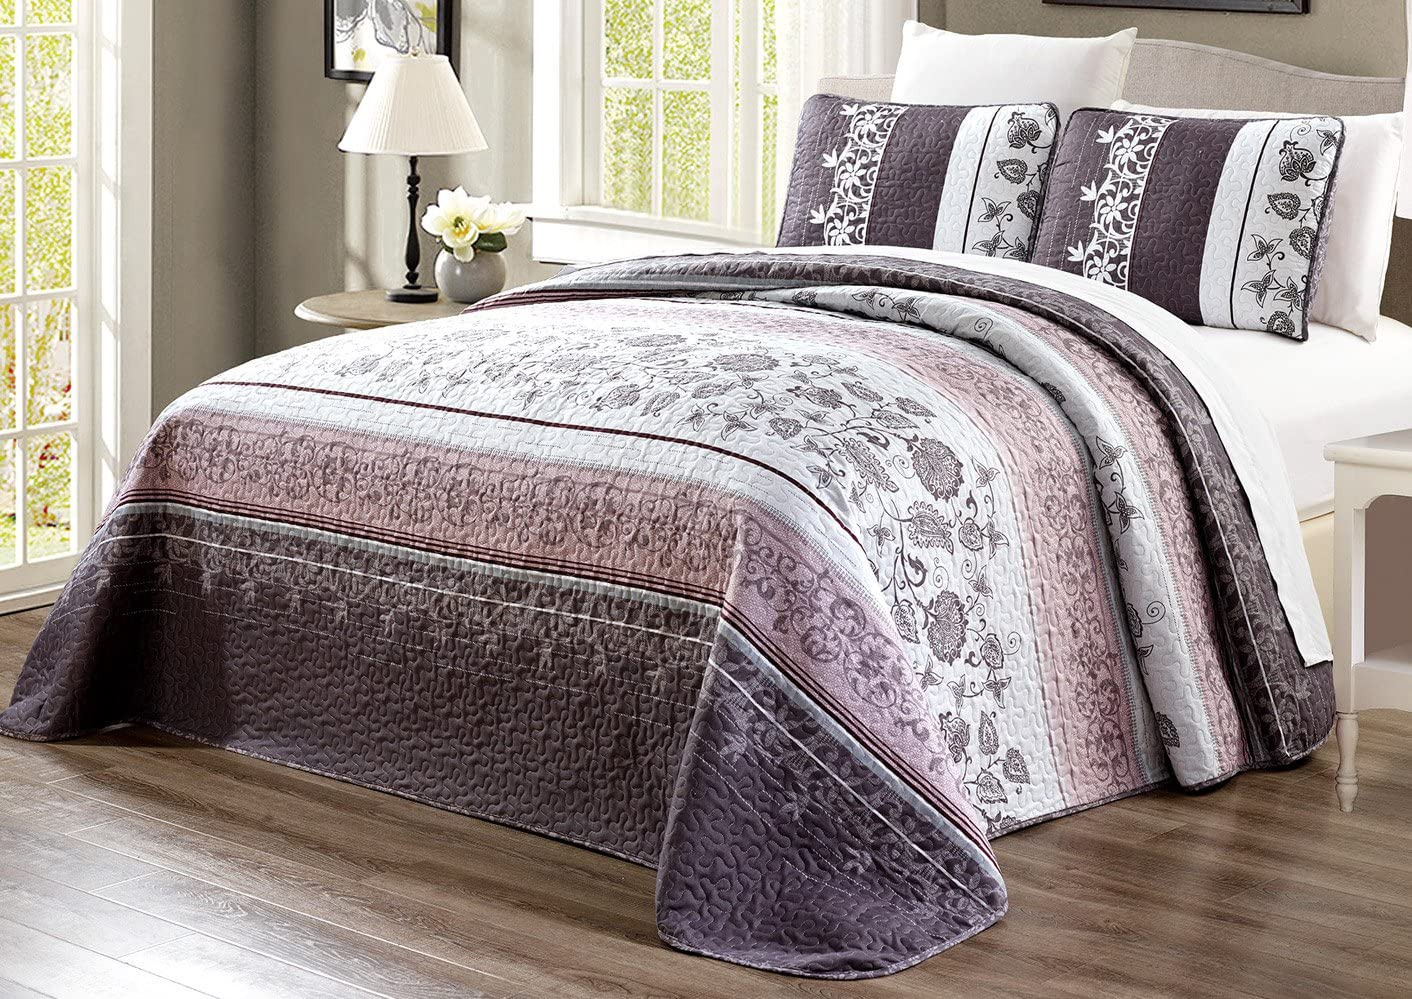 "3-Piece Oversize (115"" X 95"") Fine Printed Prewashed Quilt Set Reversible Bedspread Coverlet King Size Bed Cover (Purple. Grey, Black, White, Floral"